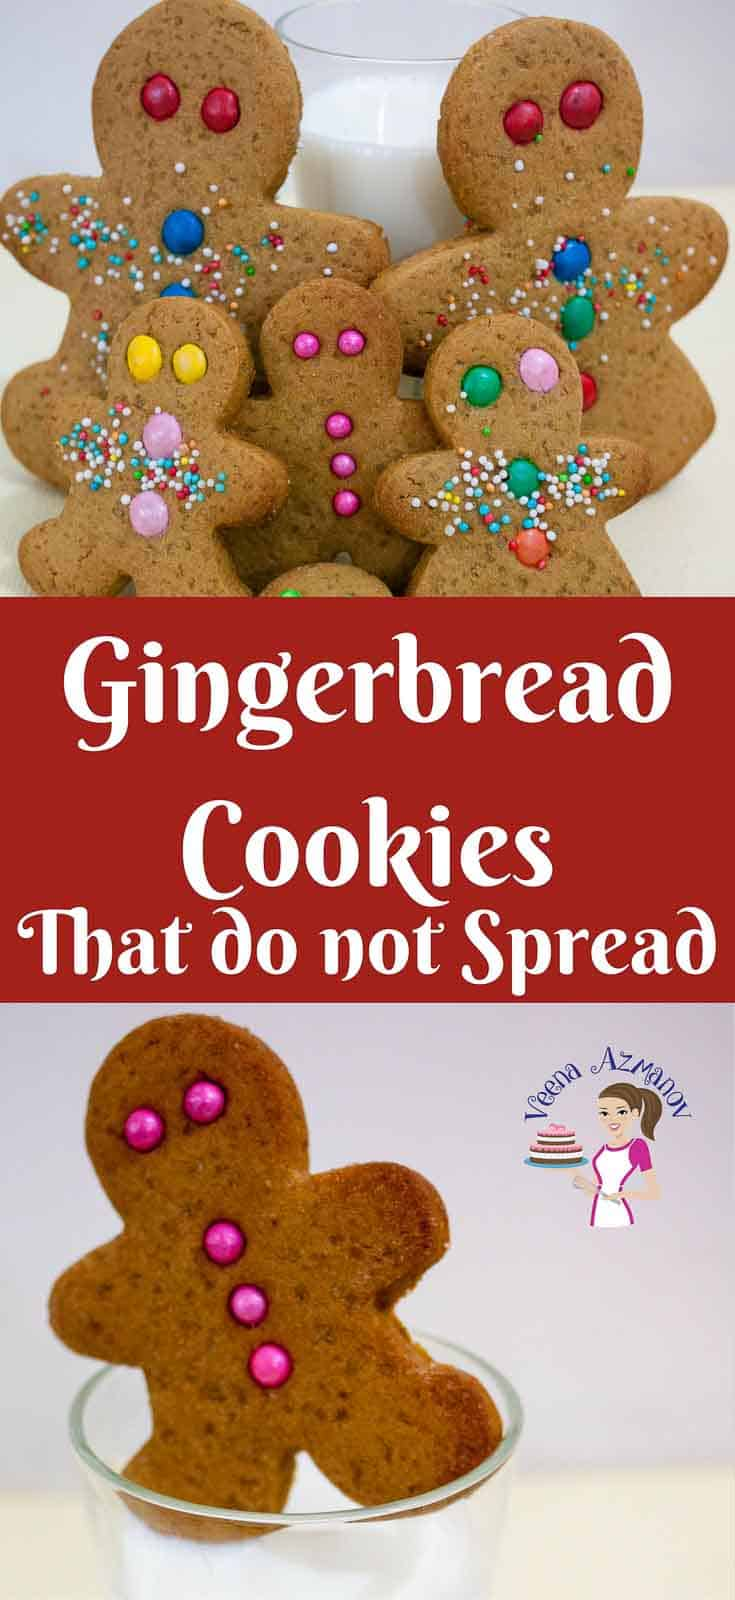 These traditional gingerbread cookies are the best treats and activity for kids especially during play dates. Watch my son in the video below. They taste absolutely delicious on their own with the warm mix of spices like ginger, cinnamon and have a beautiful color from the molasses. And make perfect goody bags for Christmas, Halloween or Easter too..!!